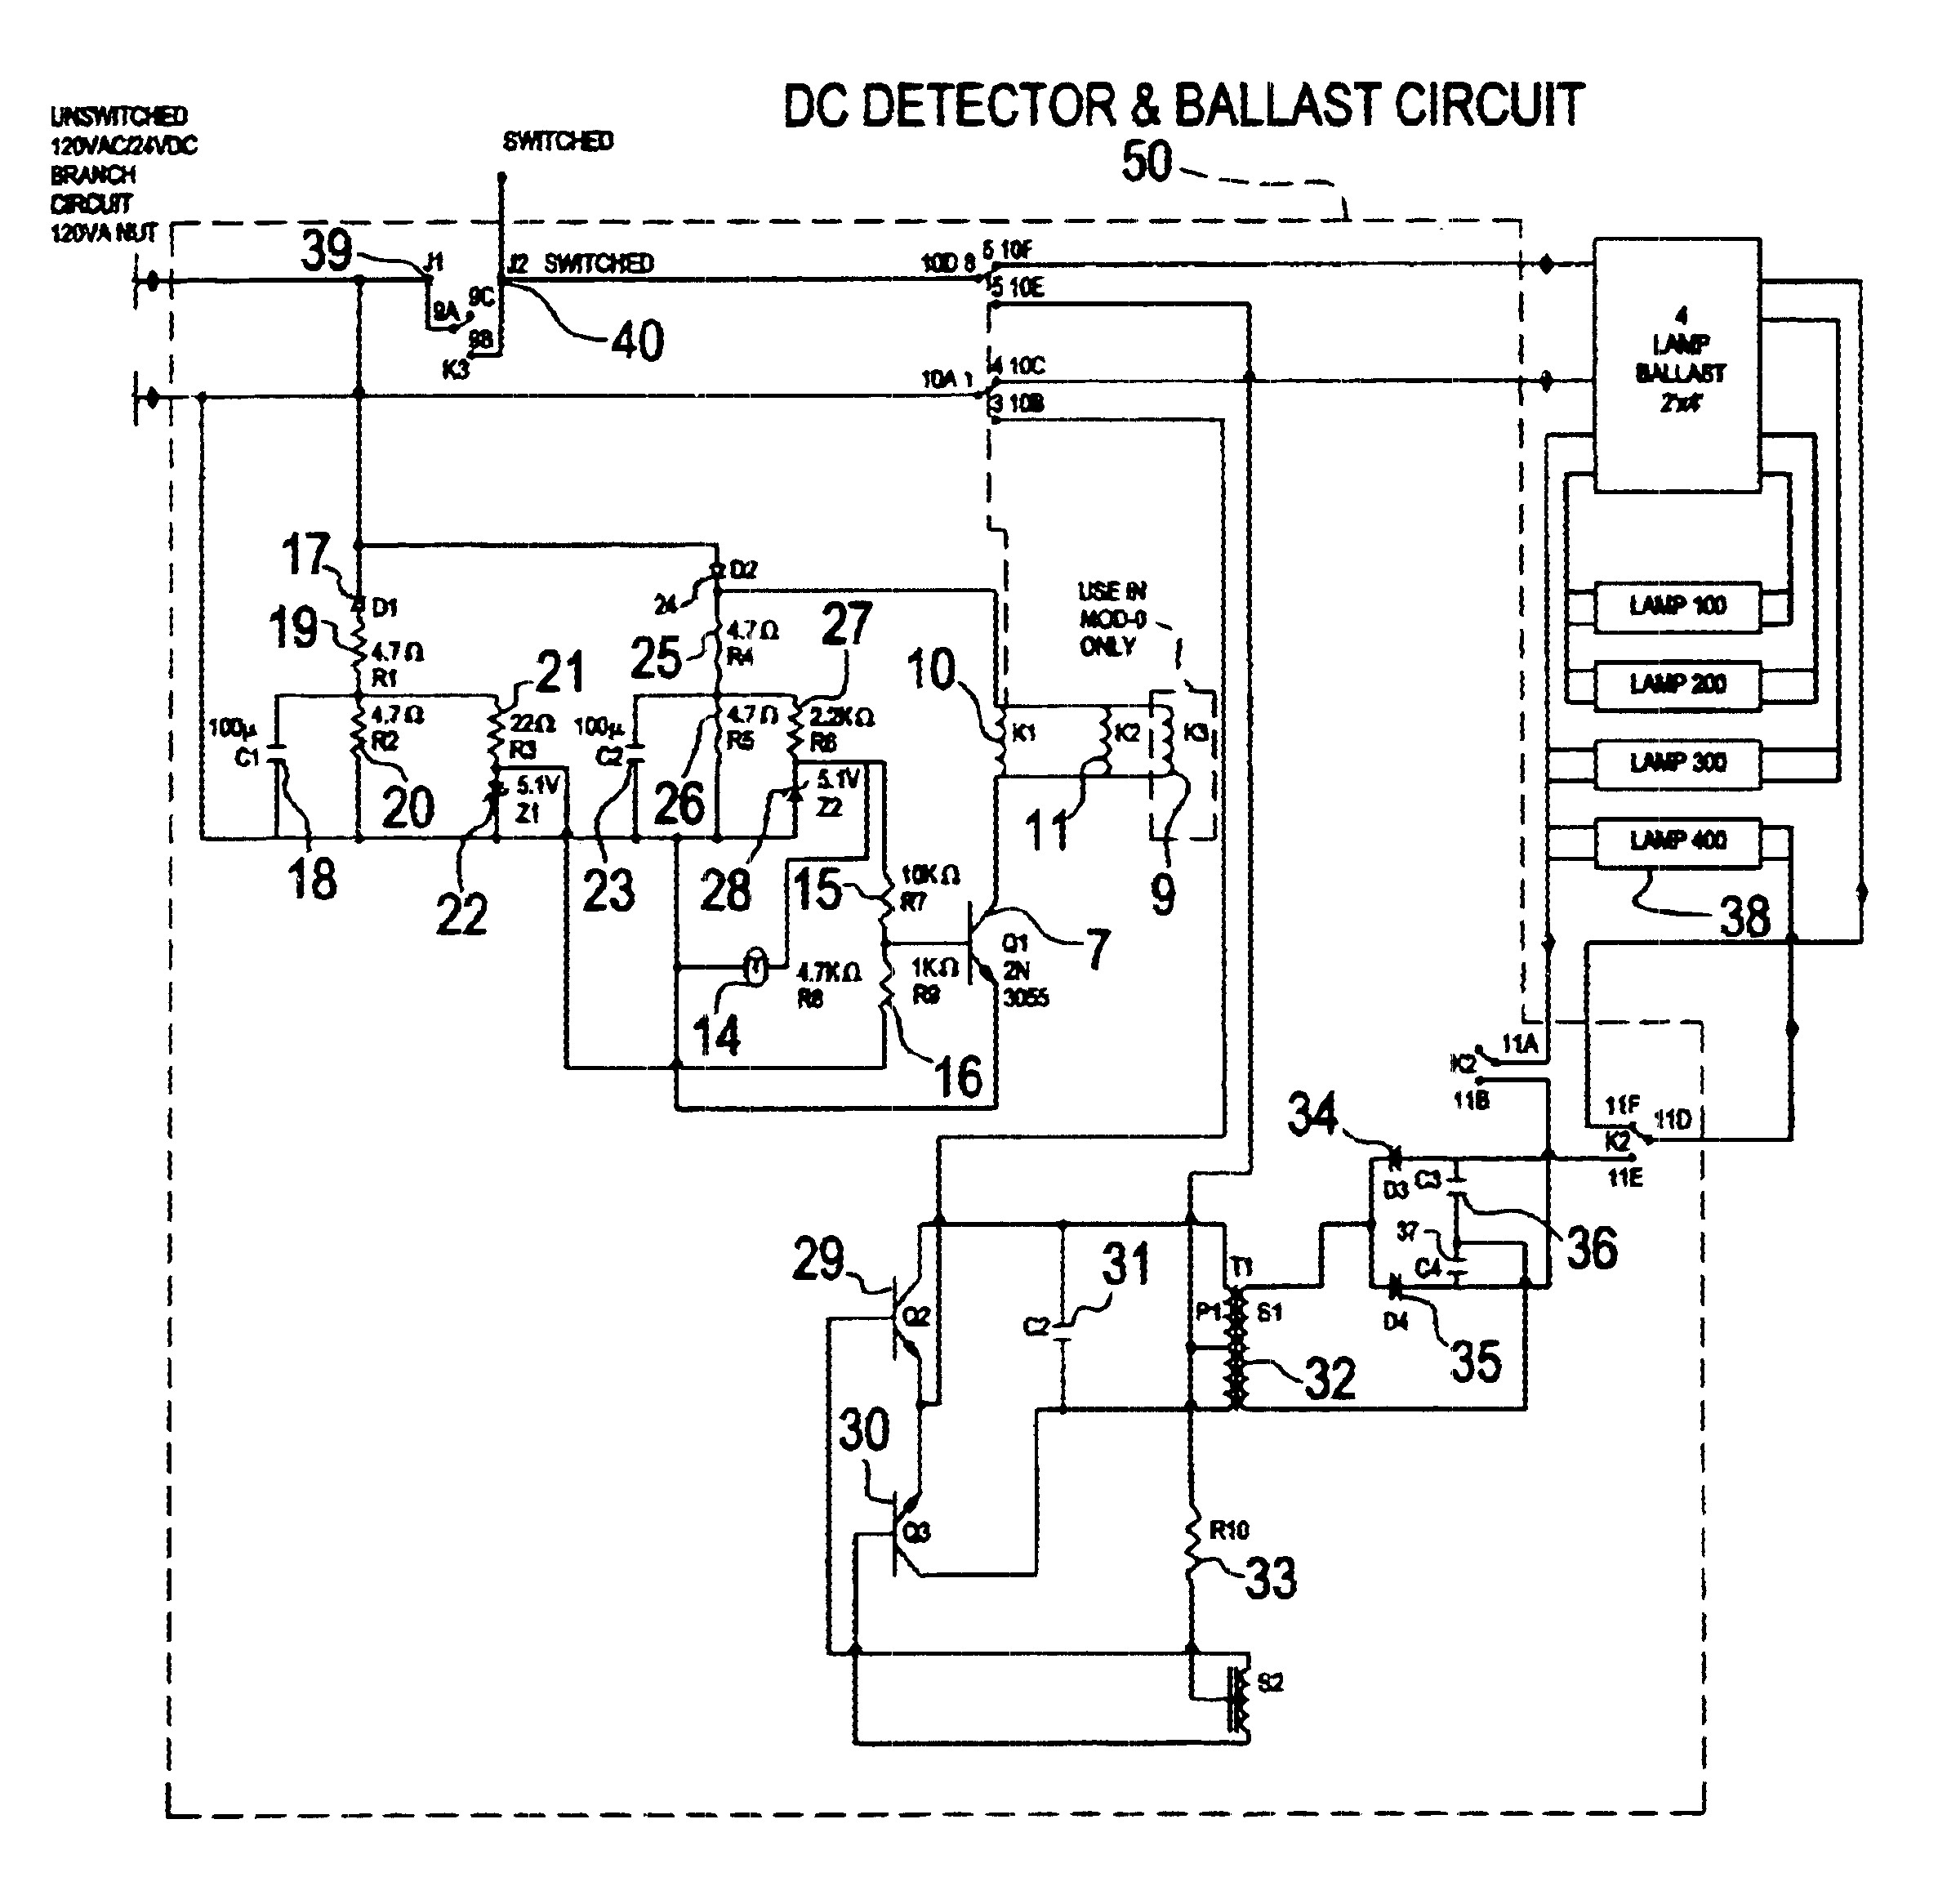 Old Bodine Wiring Diagram And Schematics Emergency Fluorescent Ballast B100